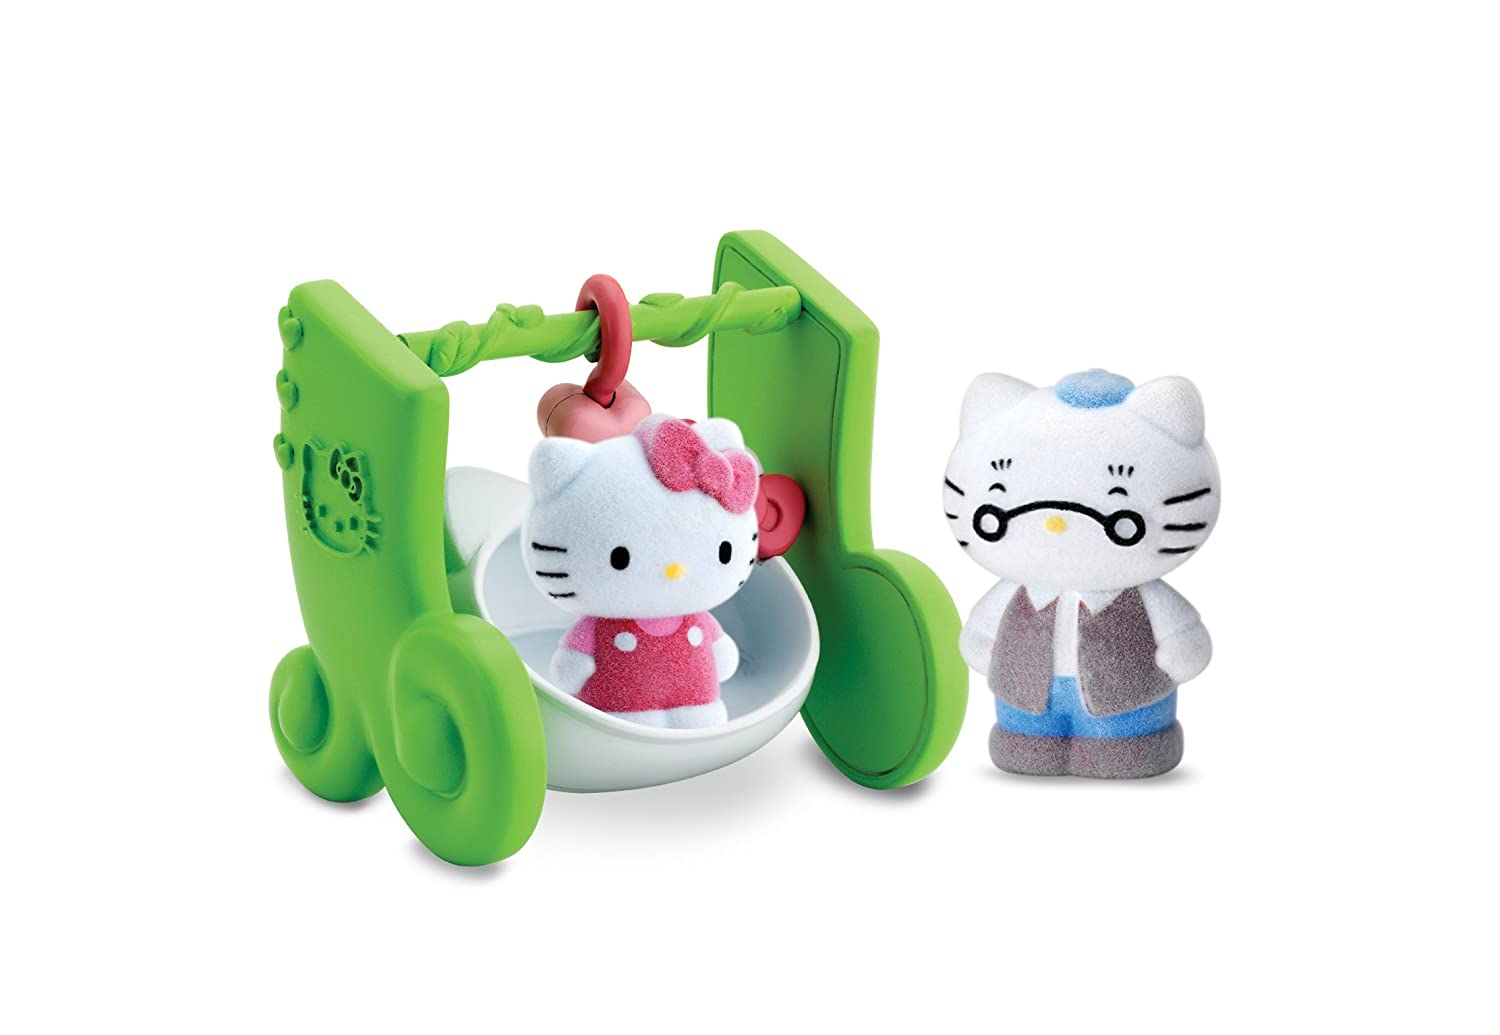 Details about HELLO KITTY PLAY TOY SWEETIE SWING FUN TOYS PLAYSET FOR